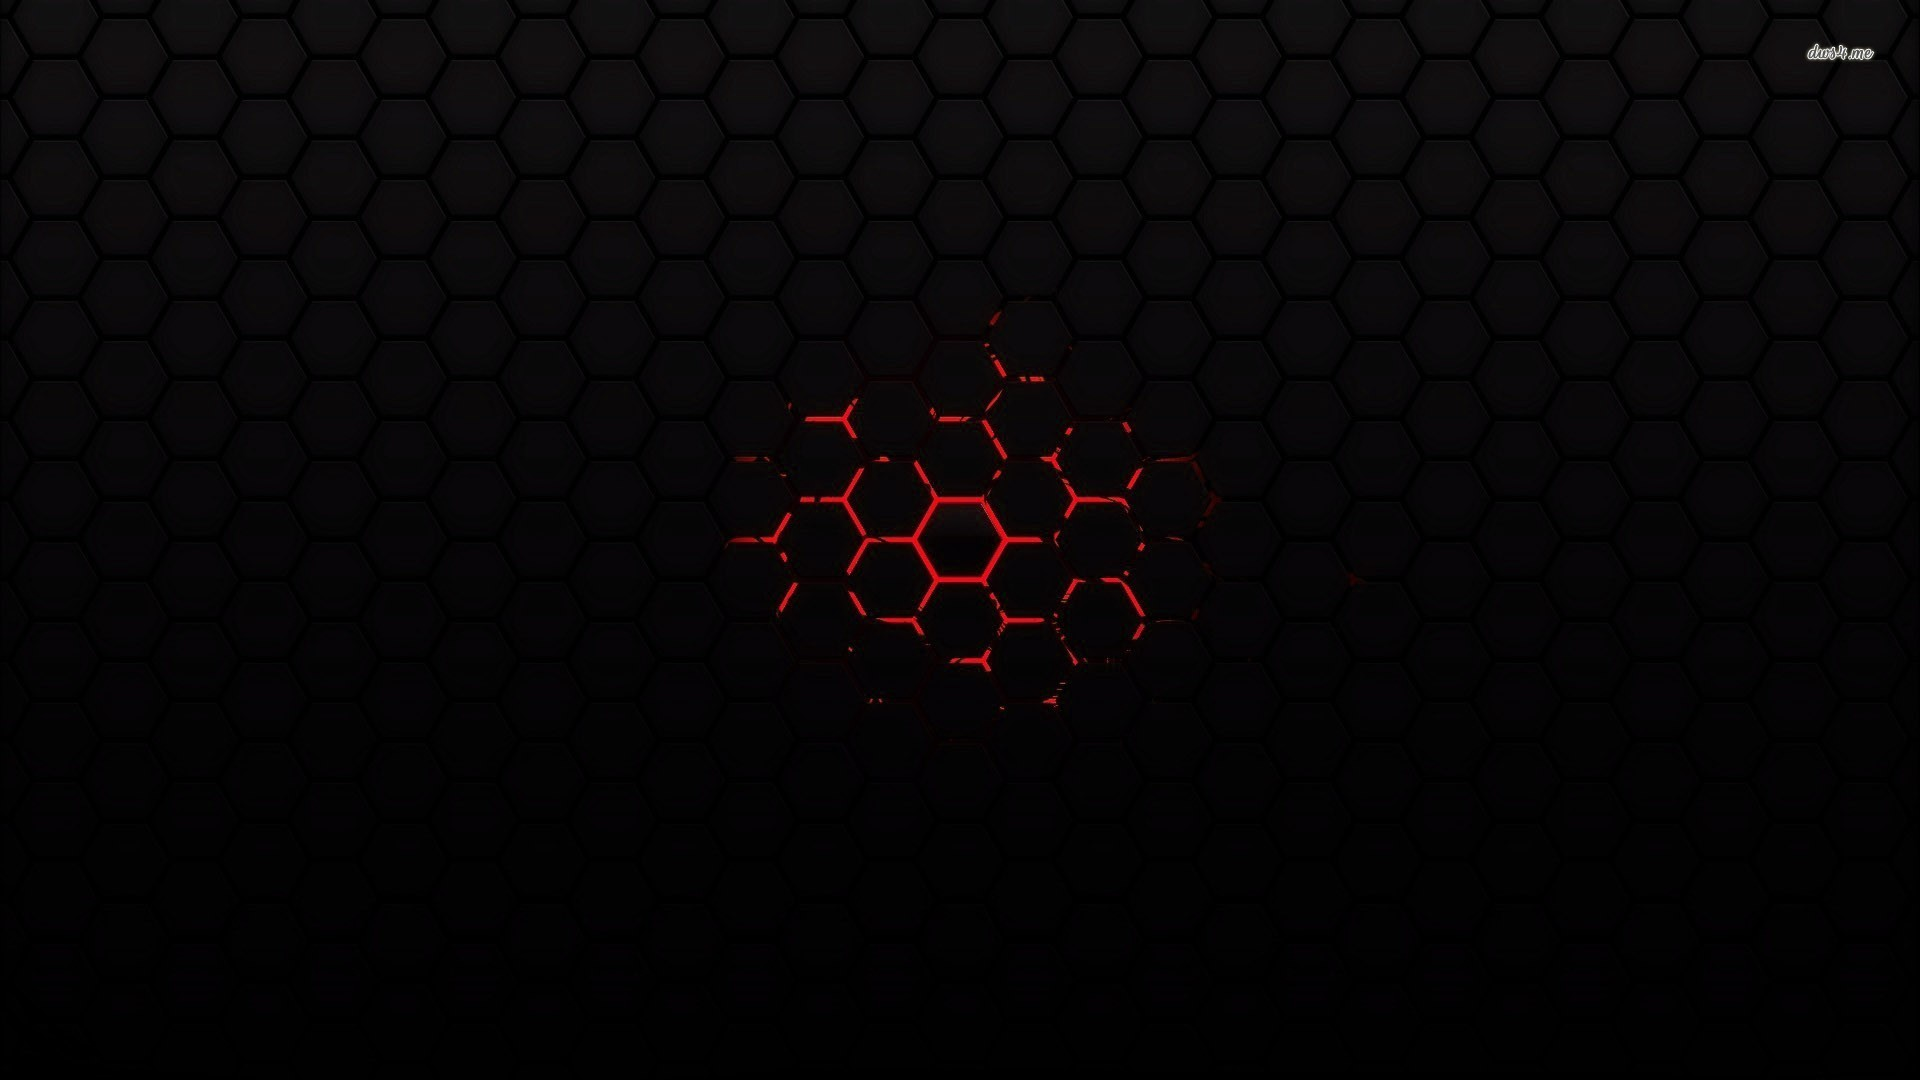 1920x1080 Red On Black Abstract Wallpaper - Wallpapers Magz